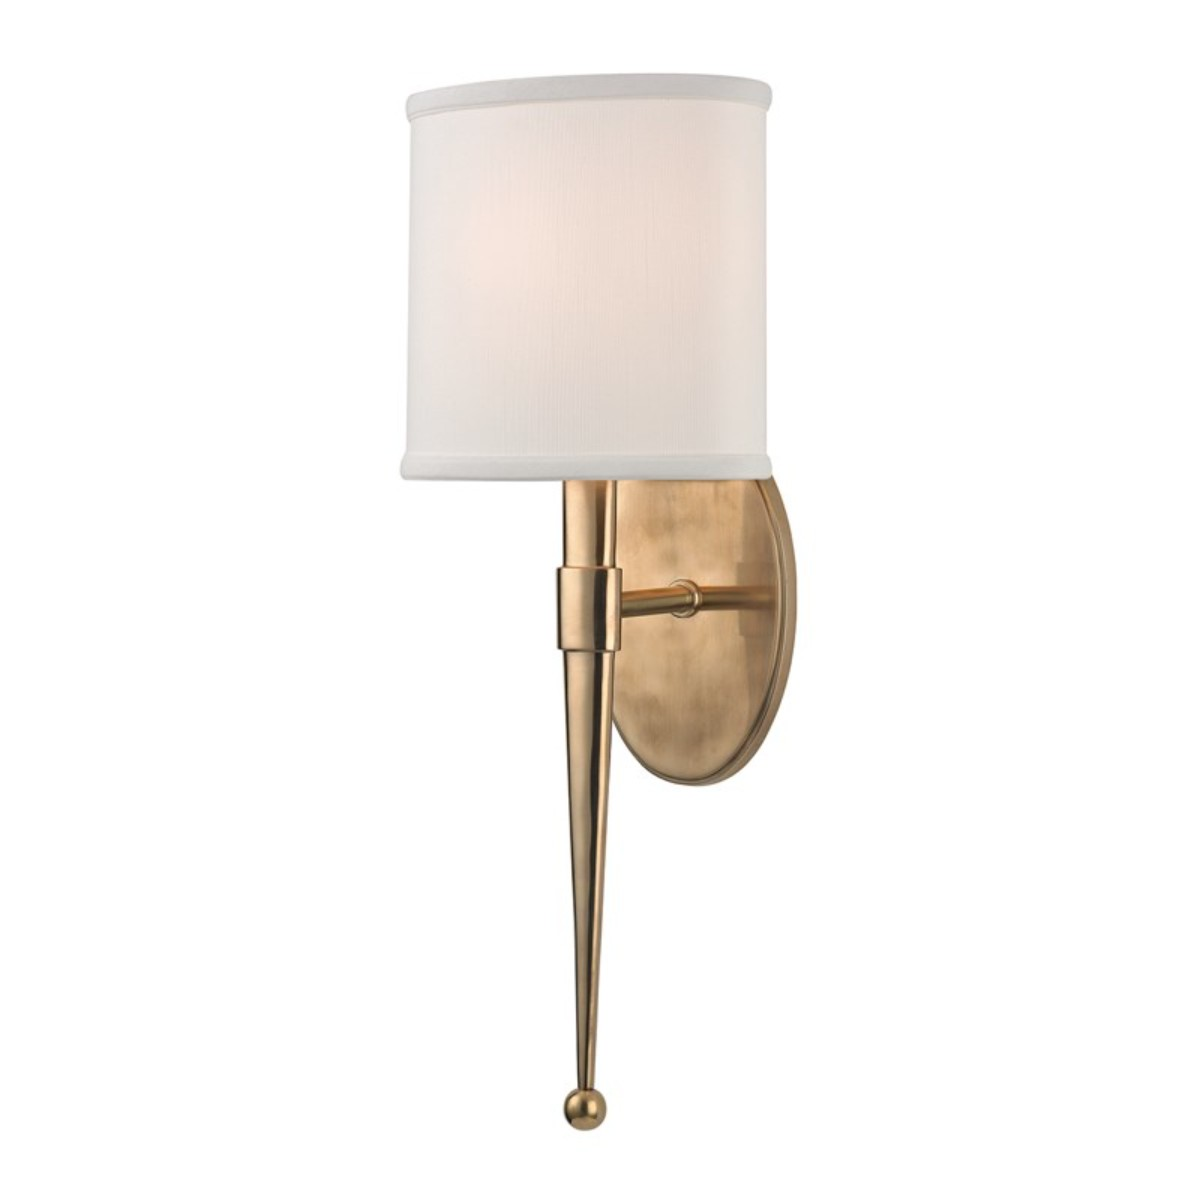 Hudson Valley I Madison Wall Sconce I Aged Brass